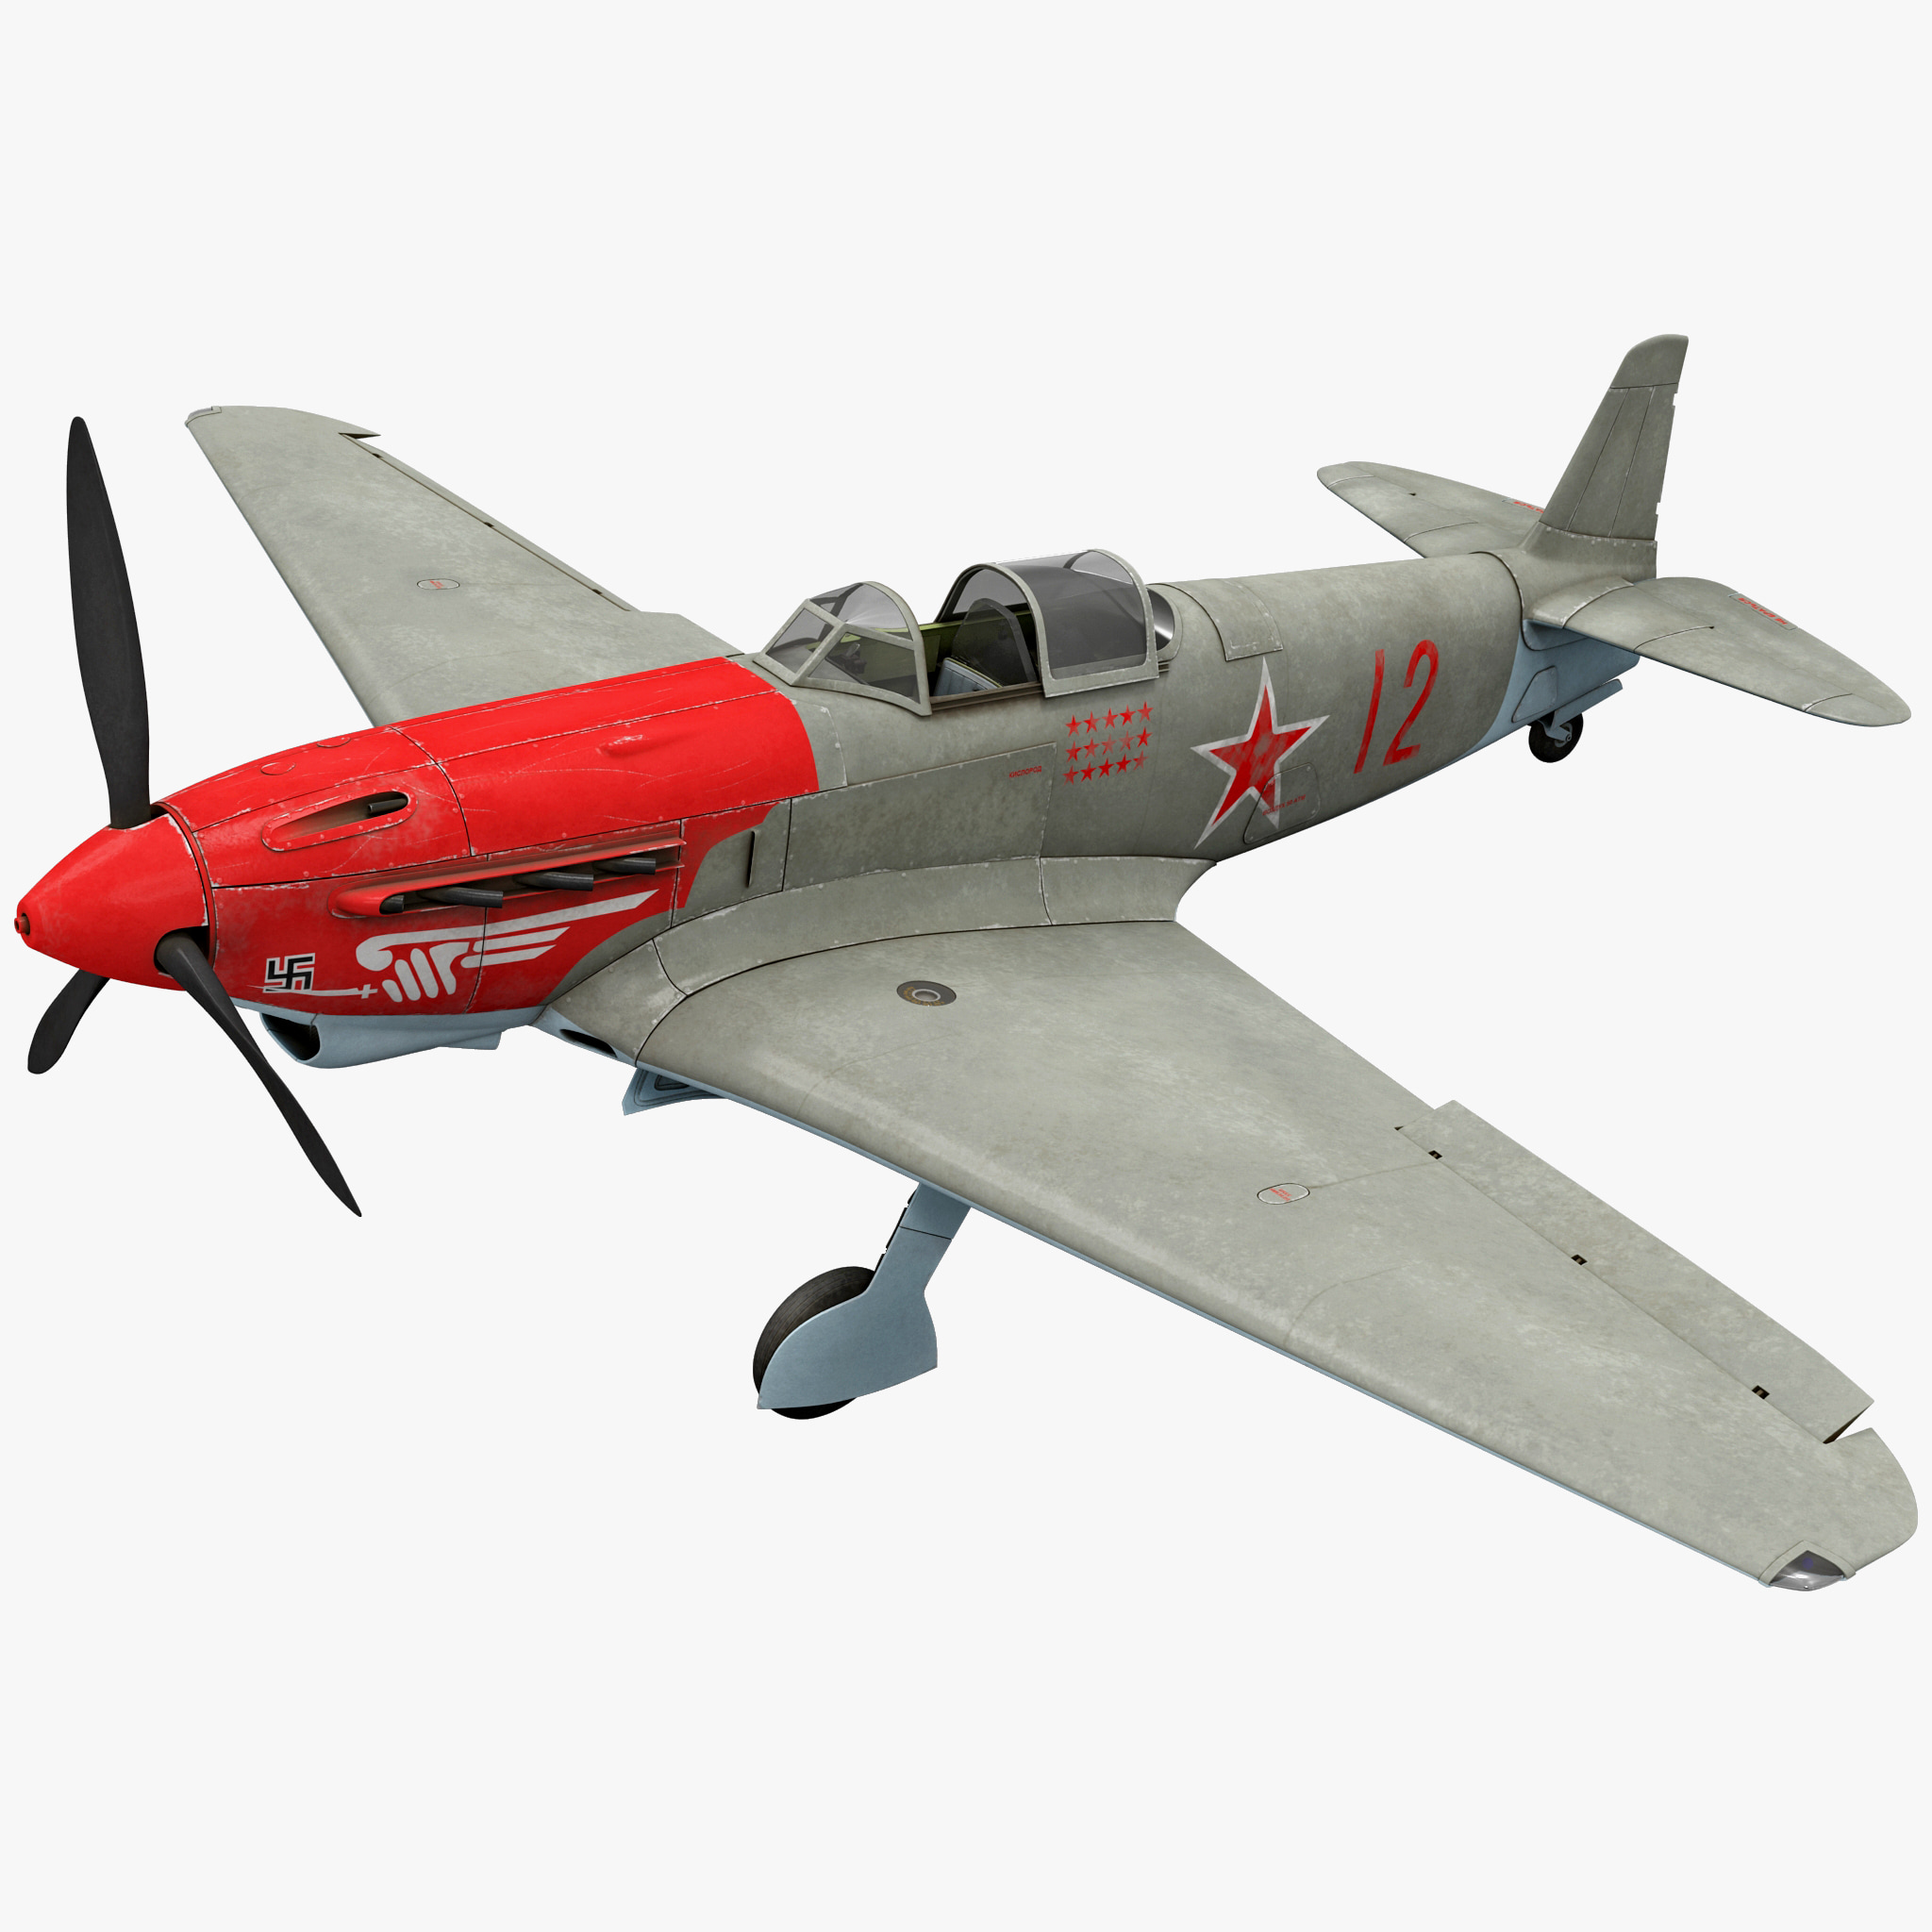 Yakovlev Yak-9 Soviet World War II Fighter Rigged_315.jpg